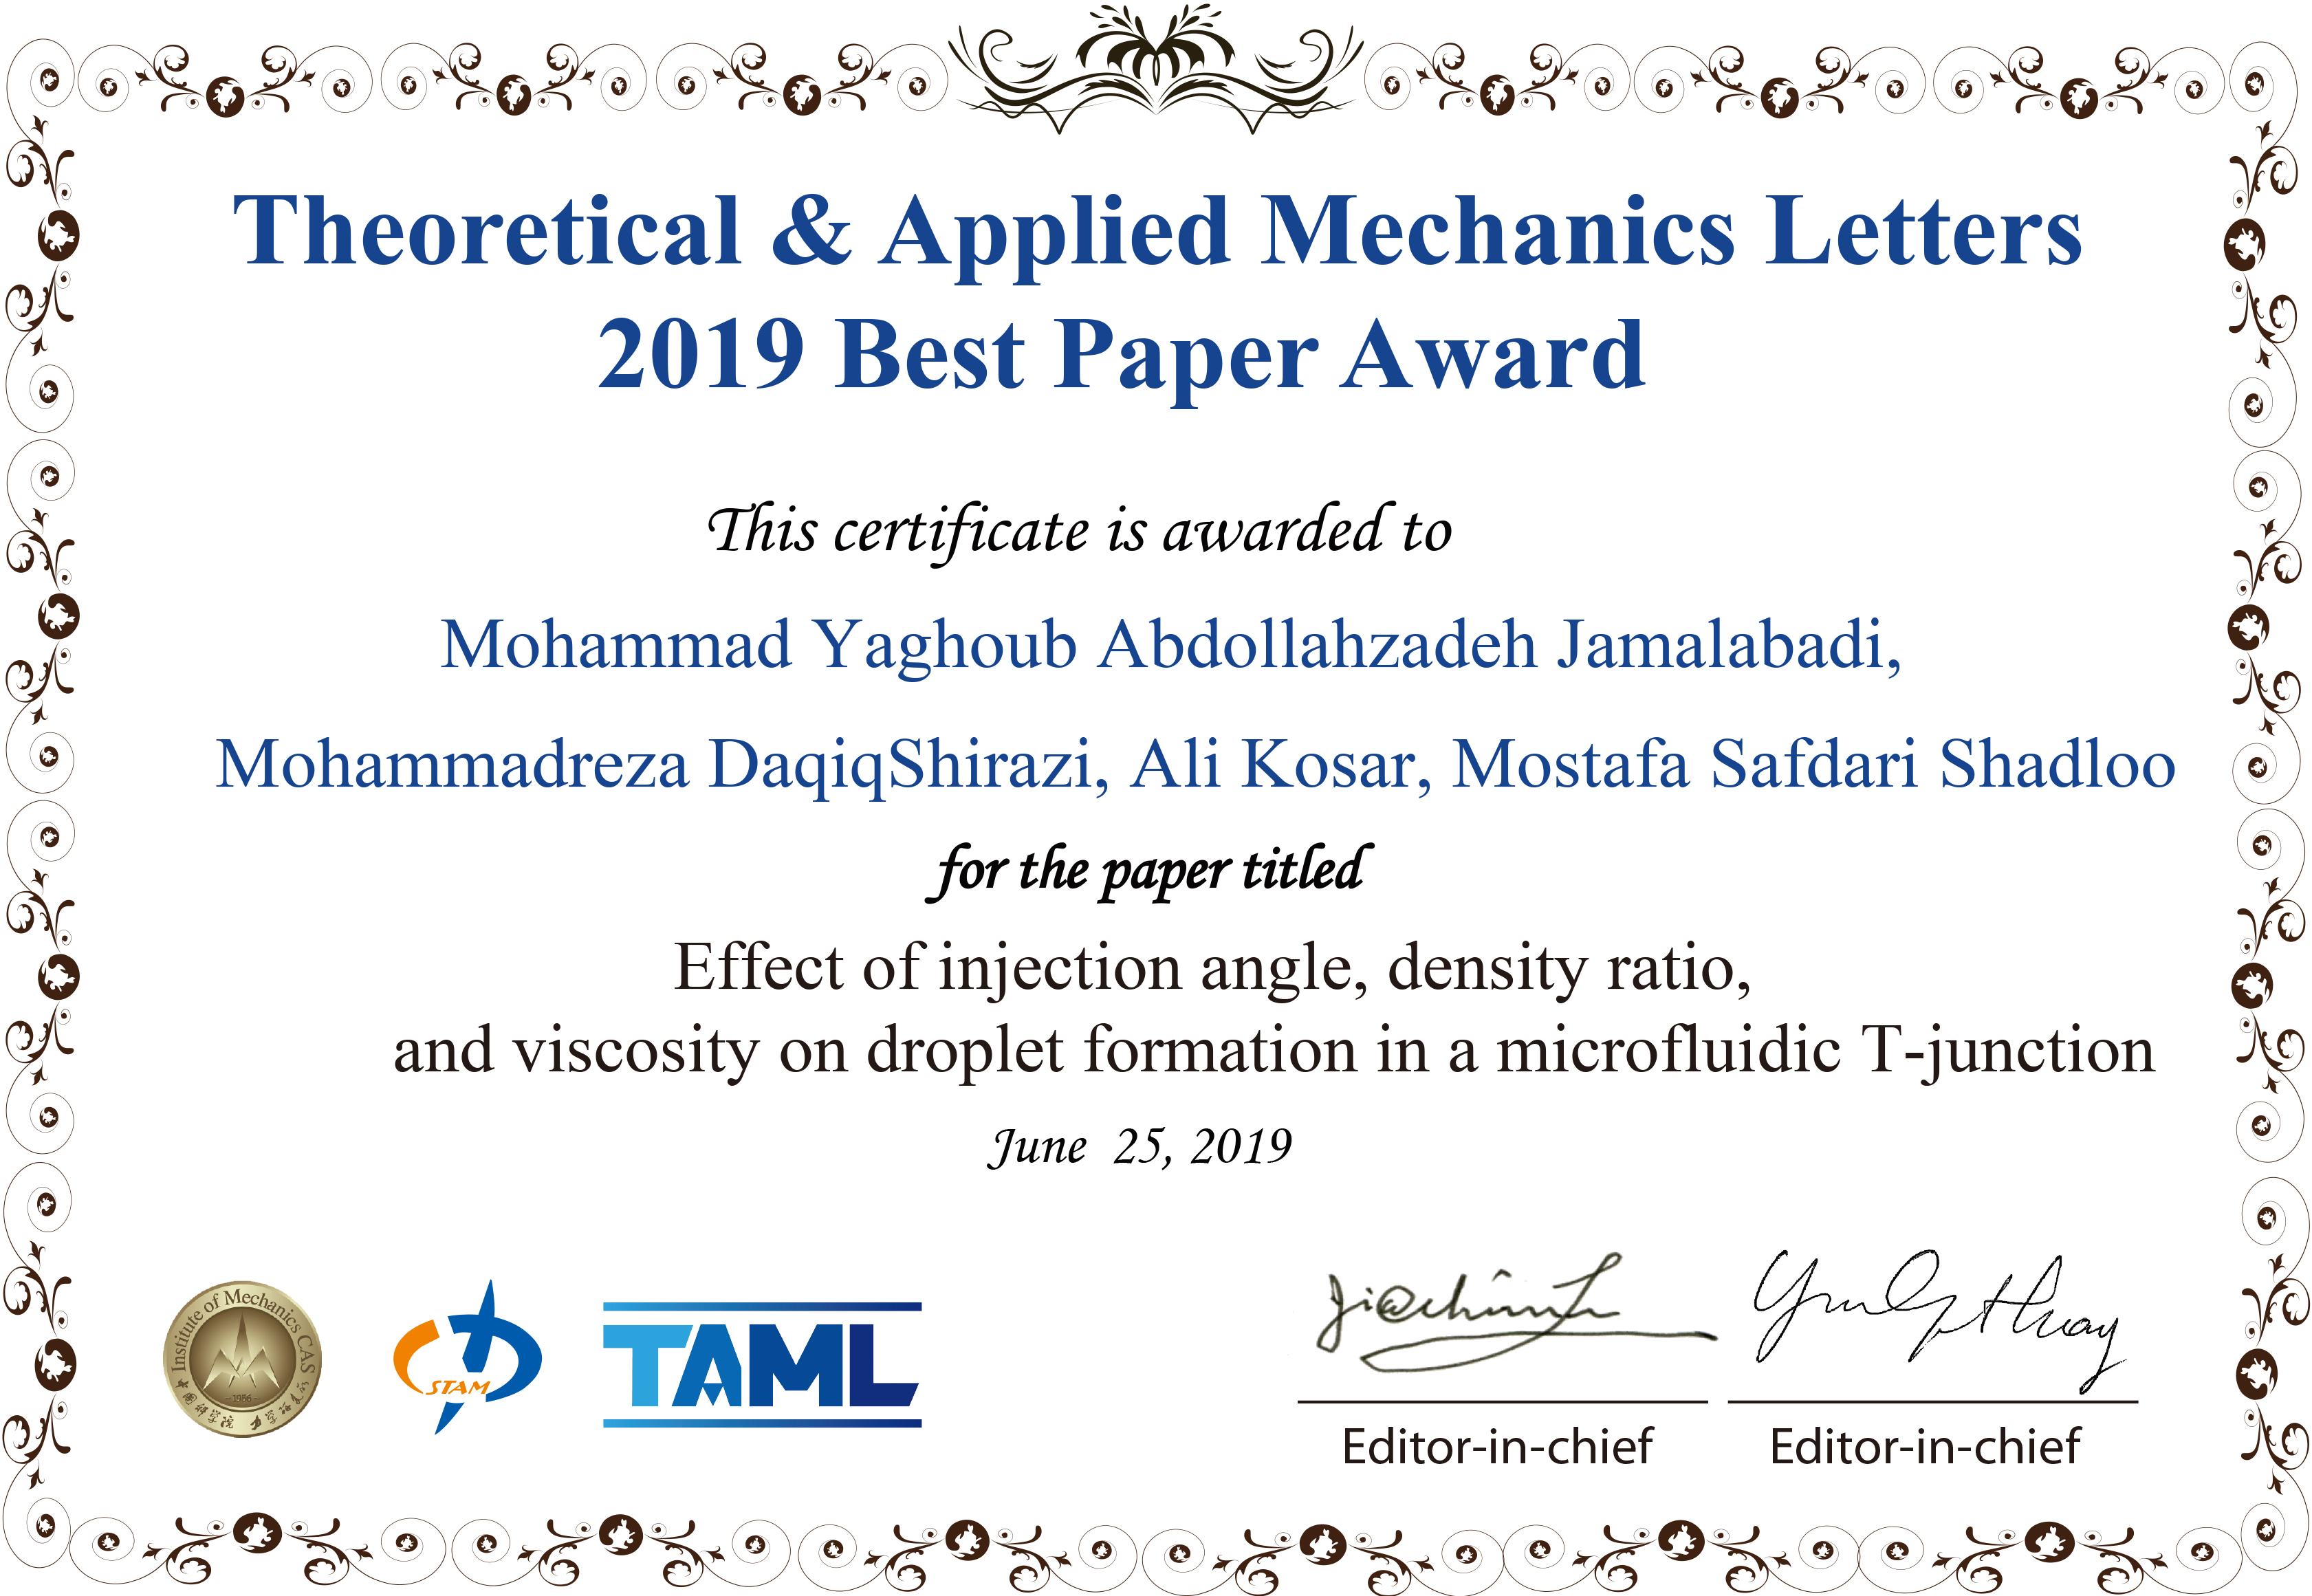 Congratulations to Theoretical & Applied Mechanics Letters 2015 Best Paper Award Winners